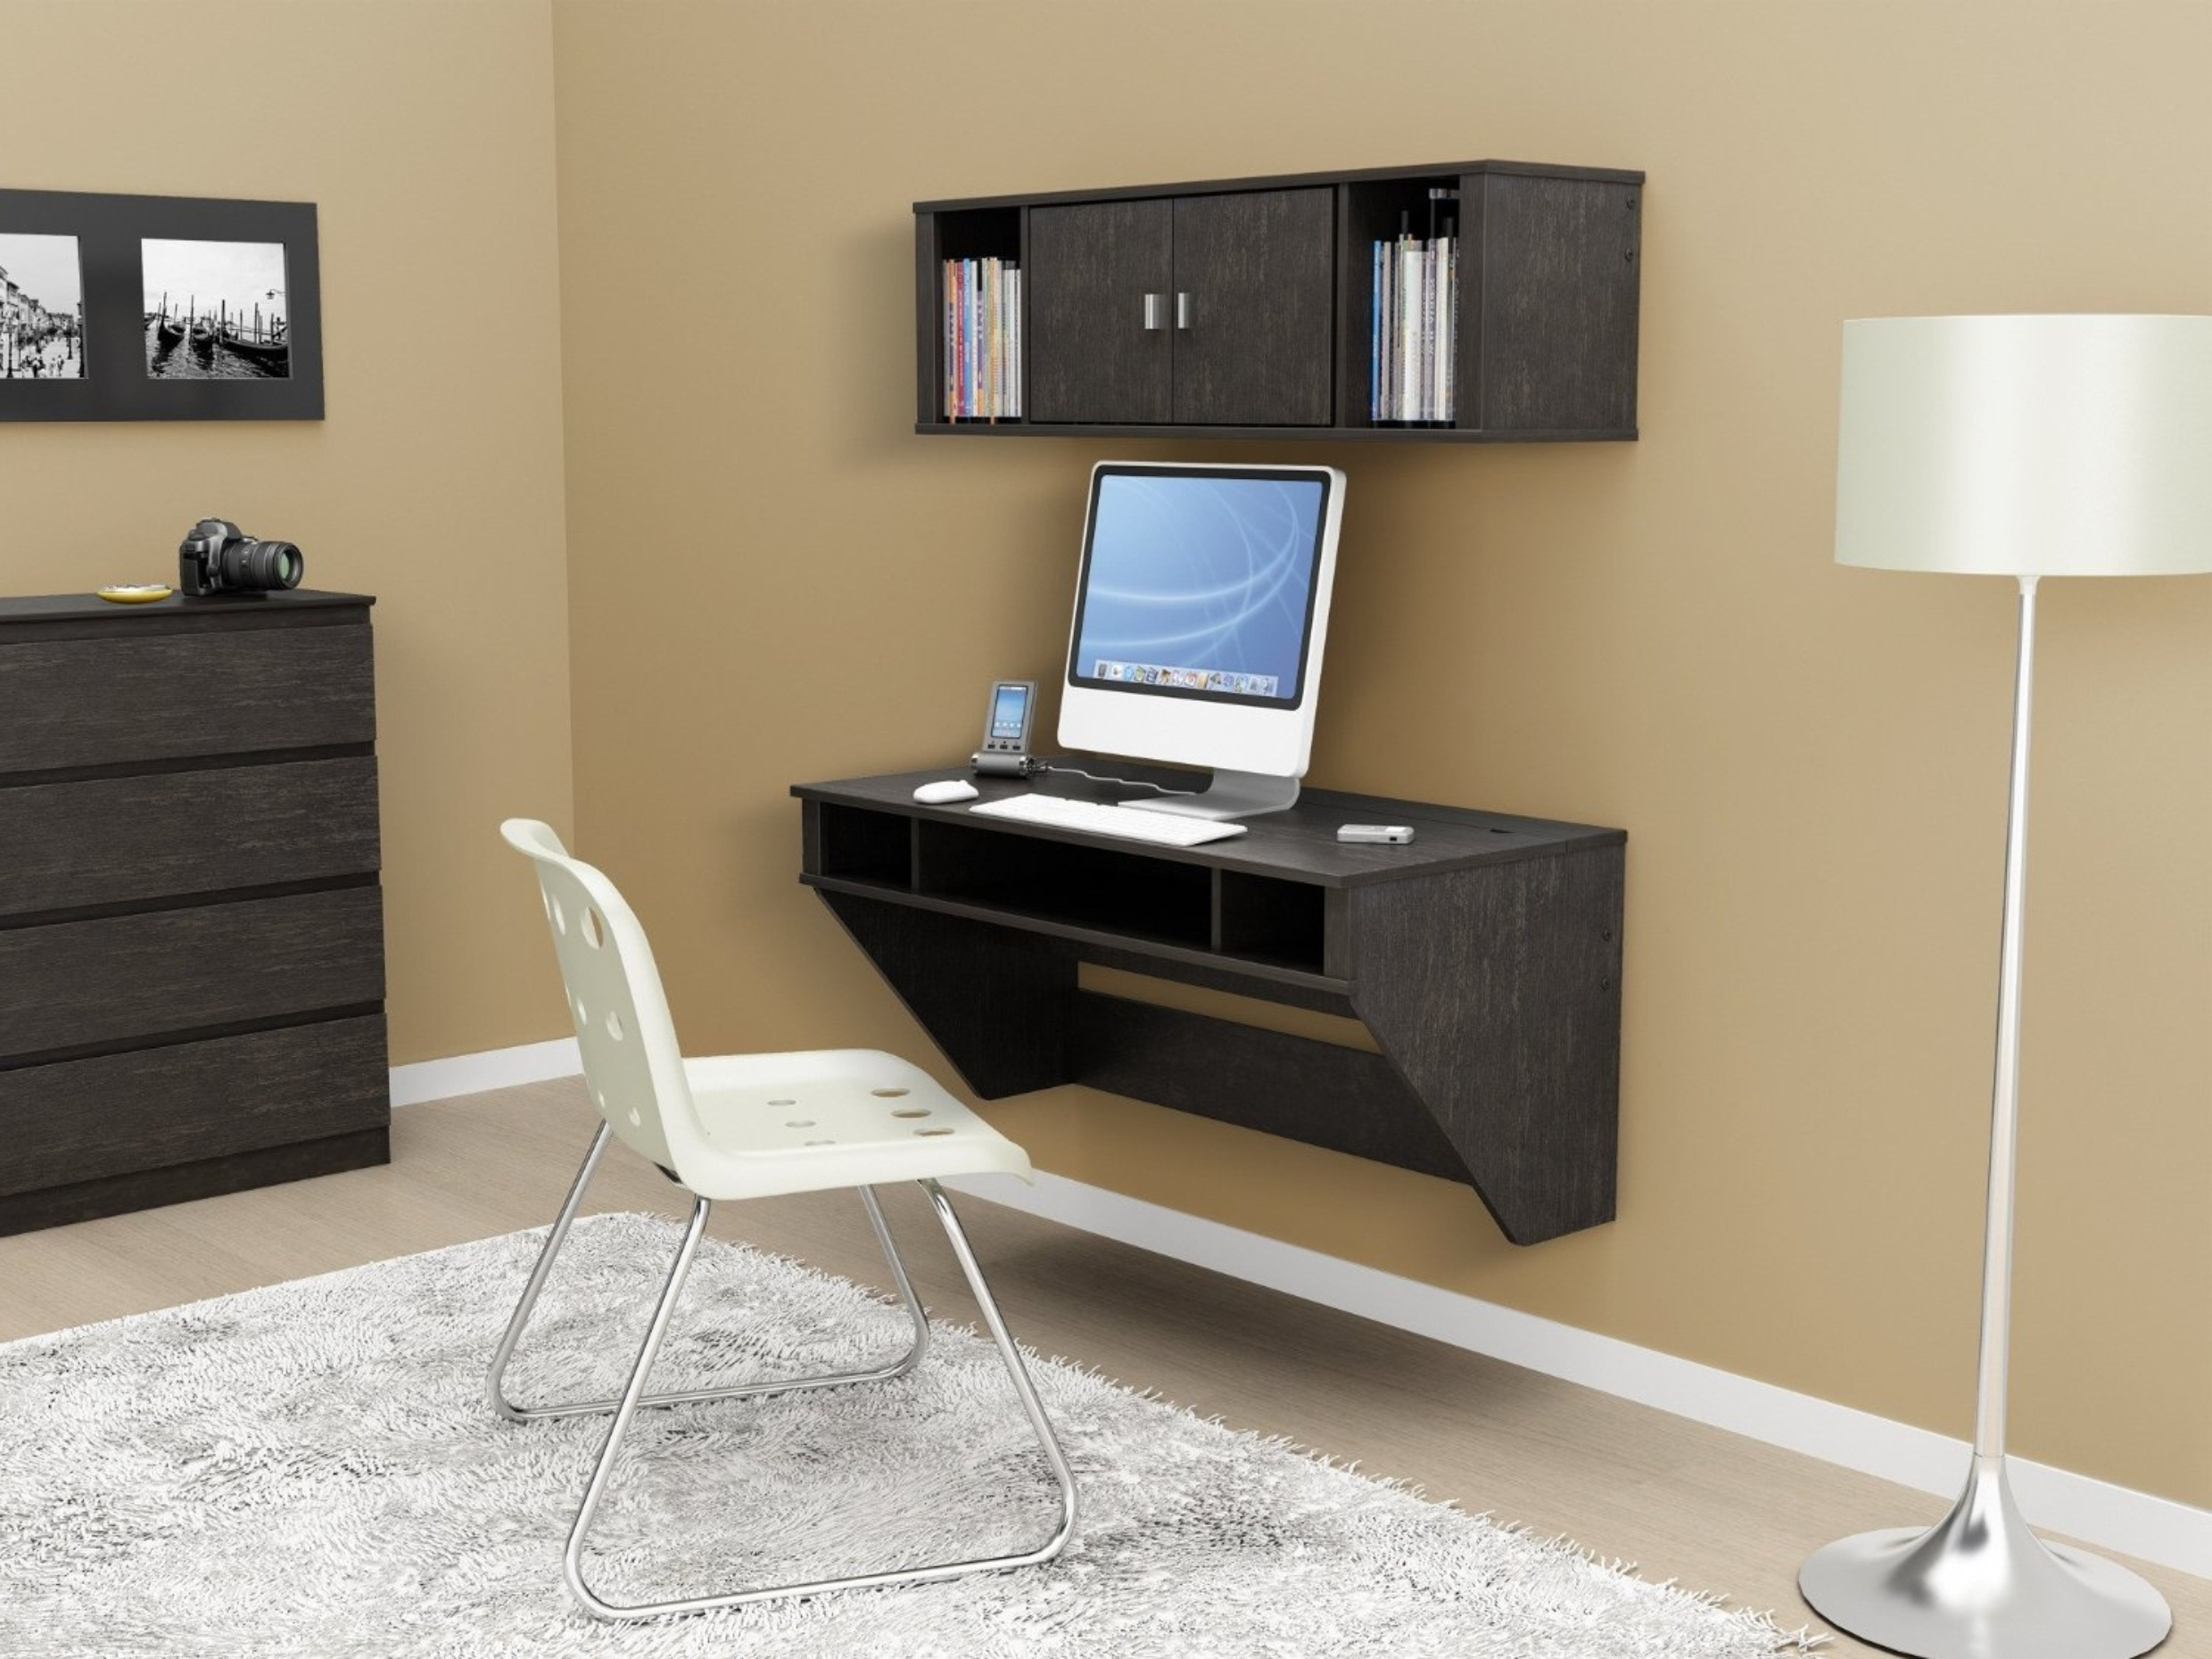 Wall Computer Desks With Regard To Recent Luxury Home Office Ideas With Wall Mount Computer Desk And Floor (View 4 of 20)